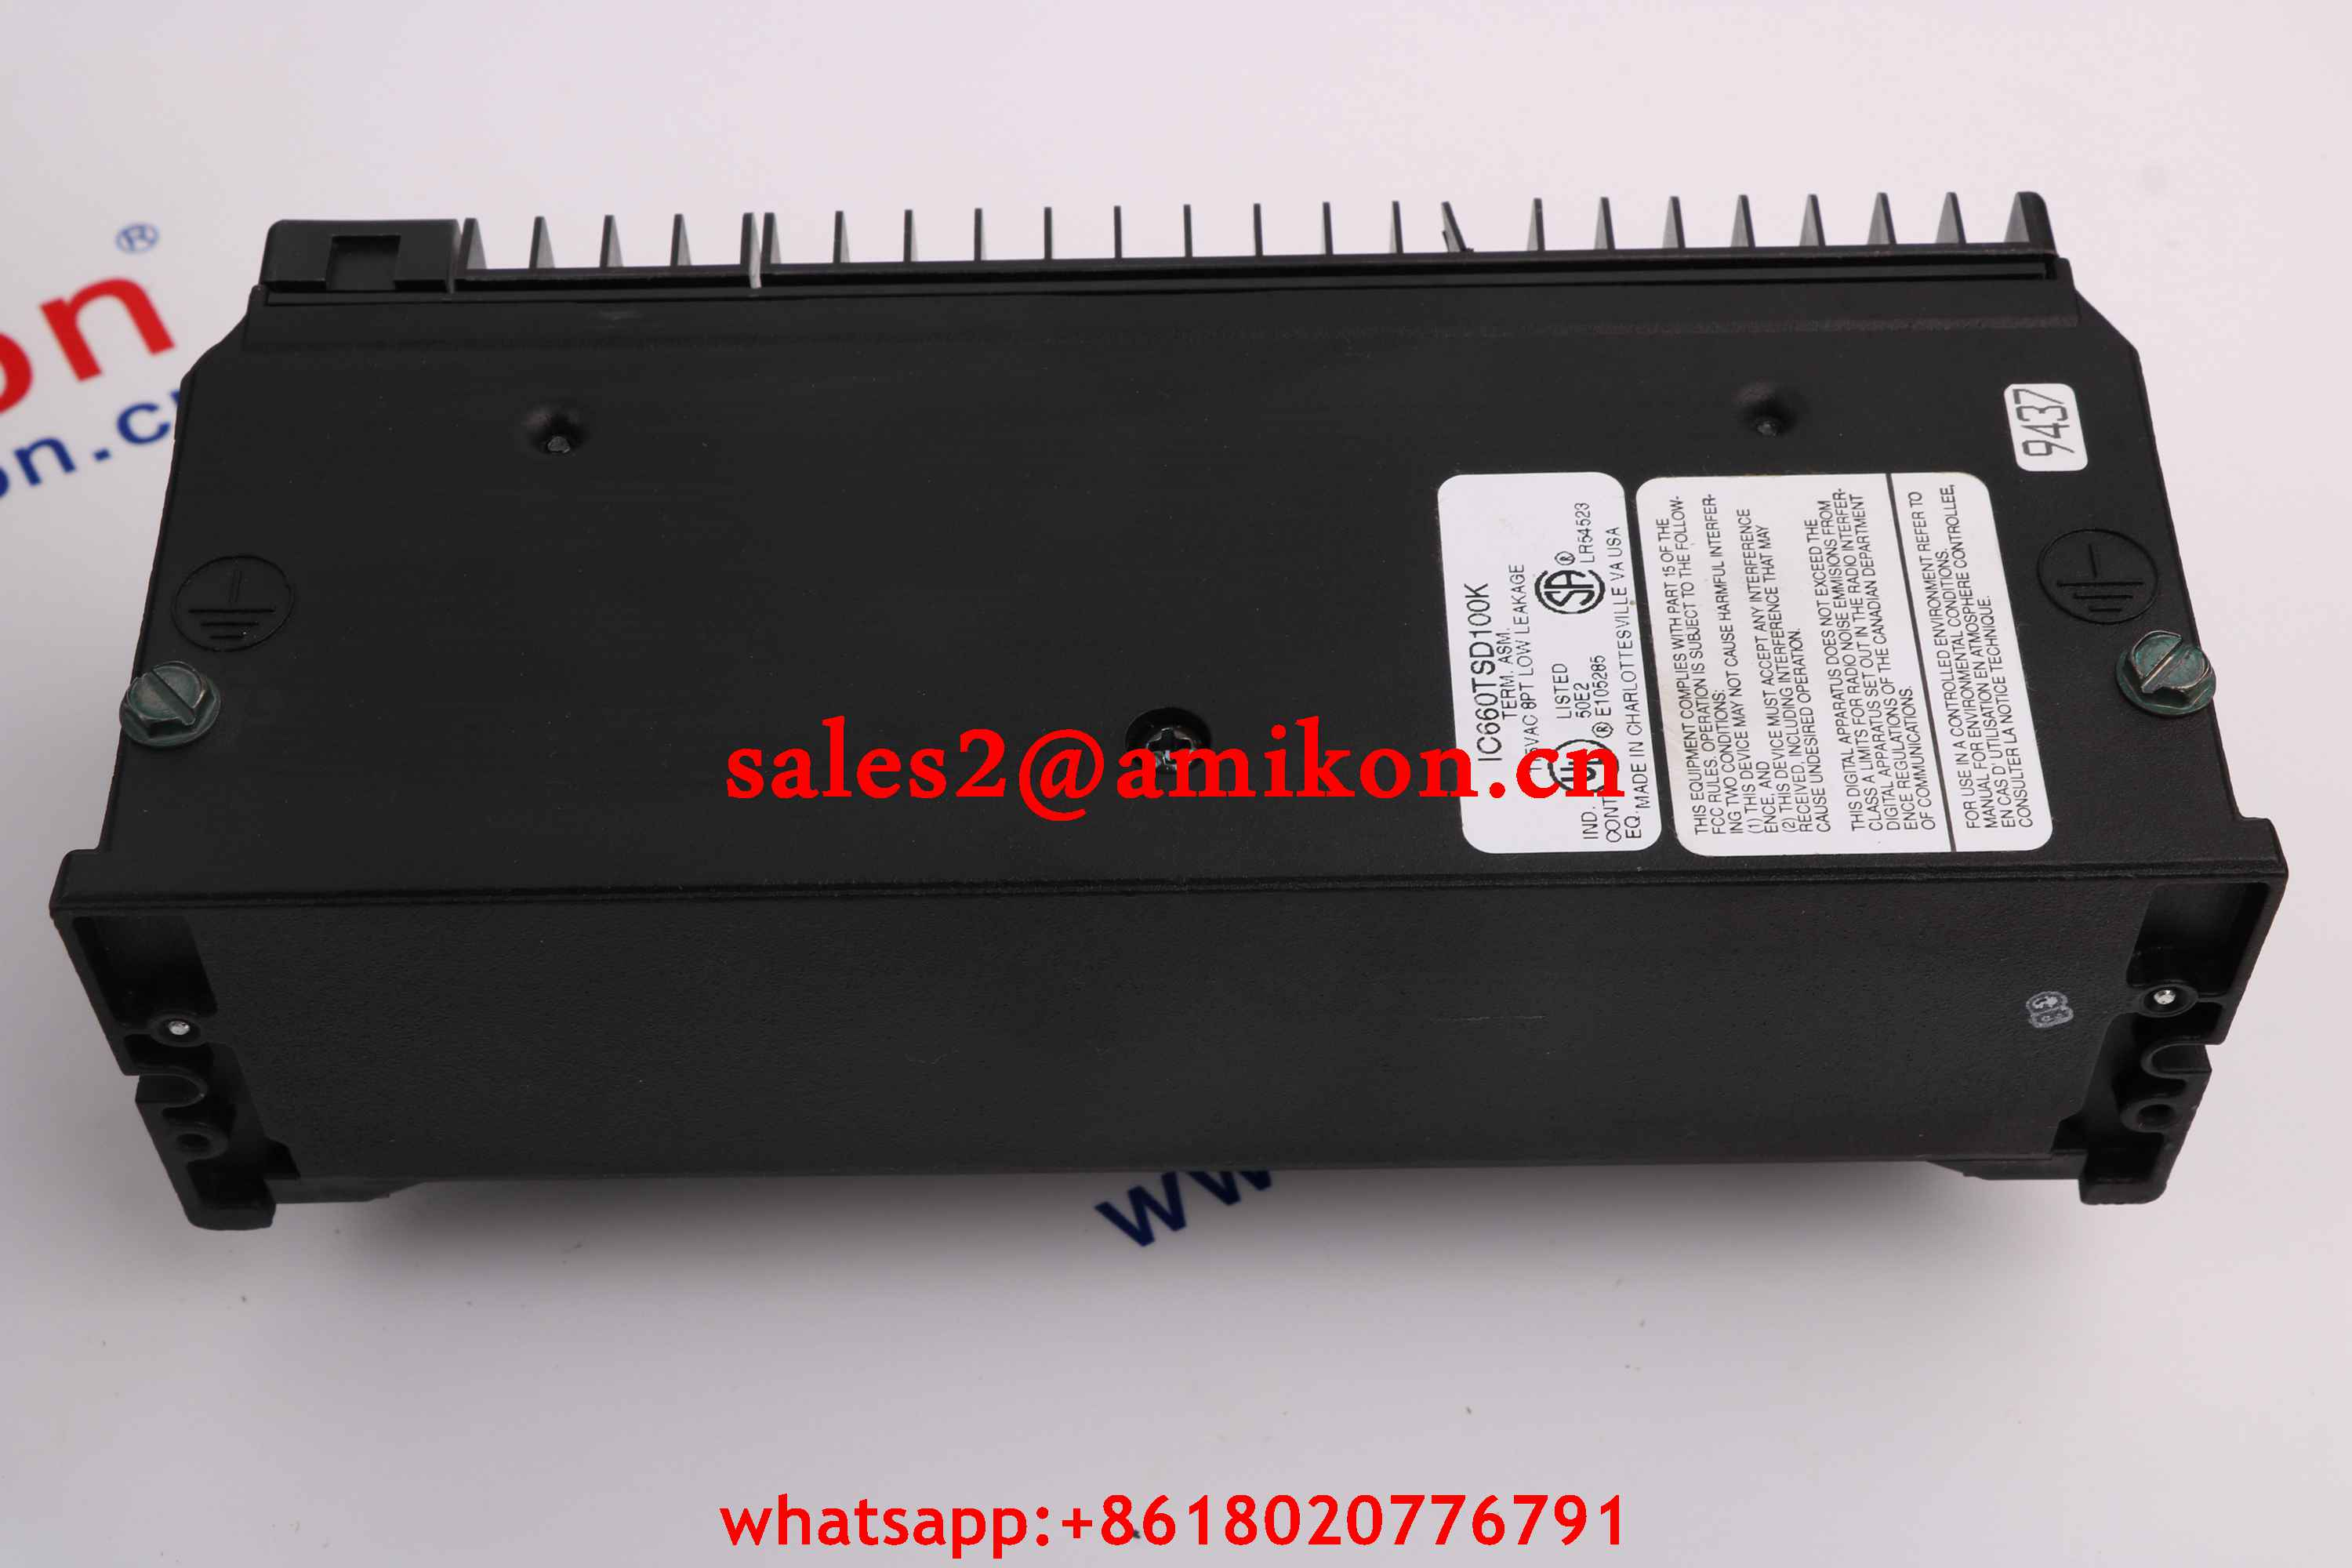 GE FANUC DS3880PSCC1D1B   new and Original USA 1 year warranty